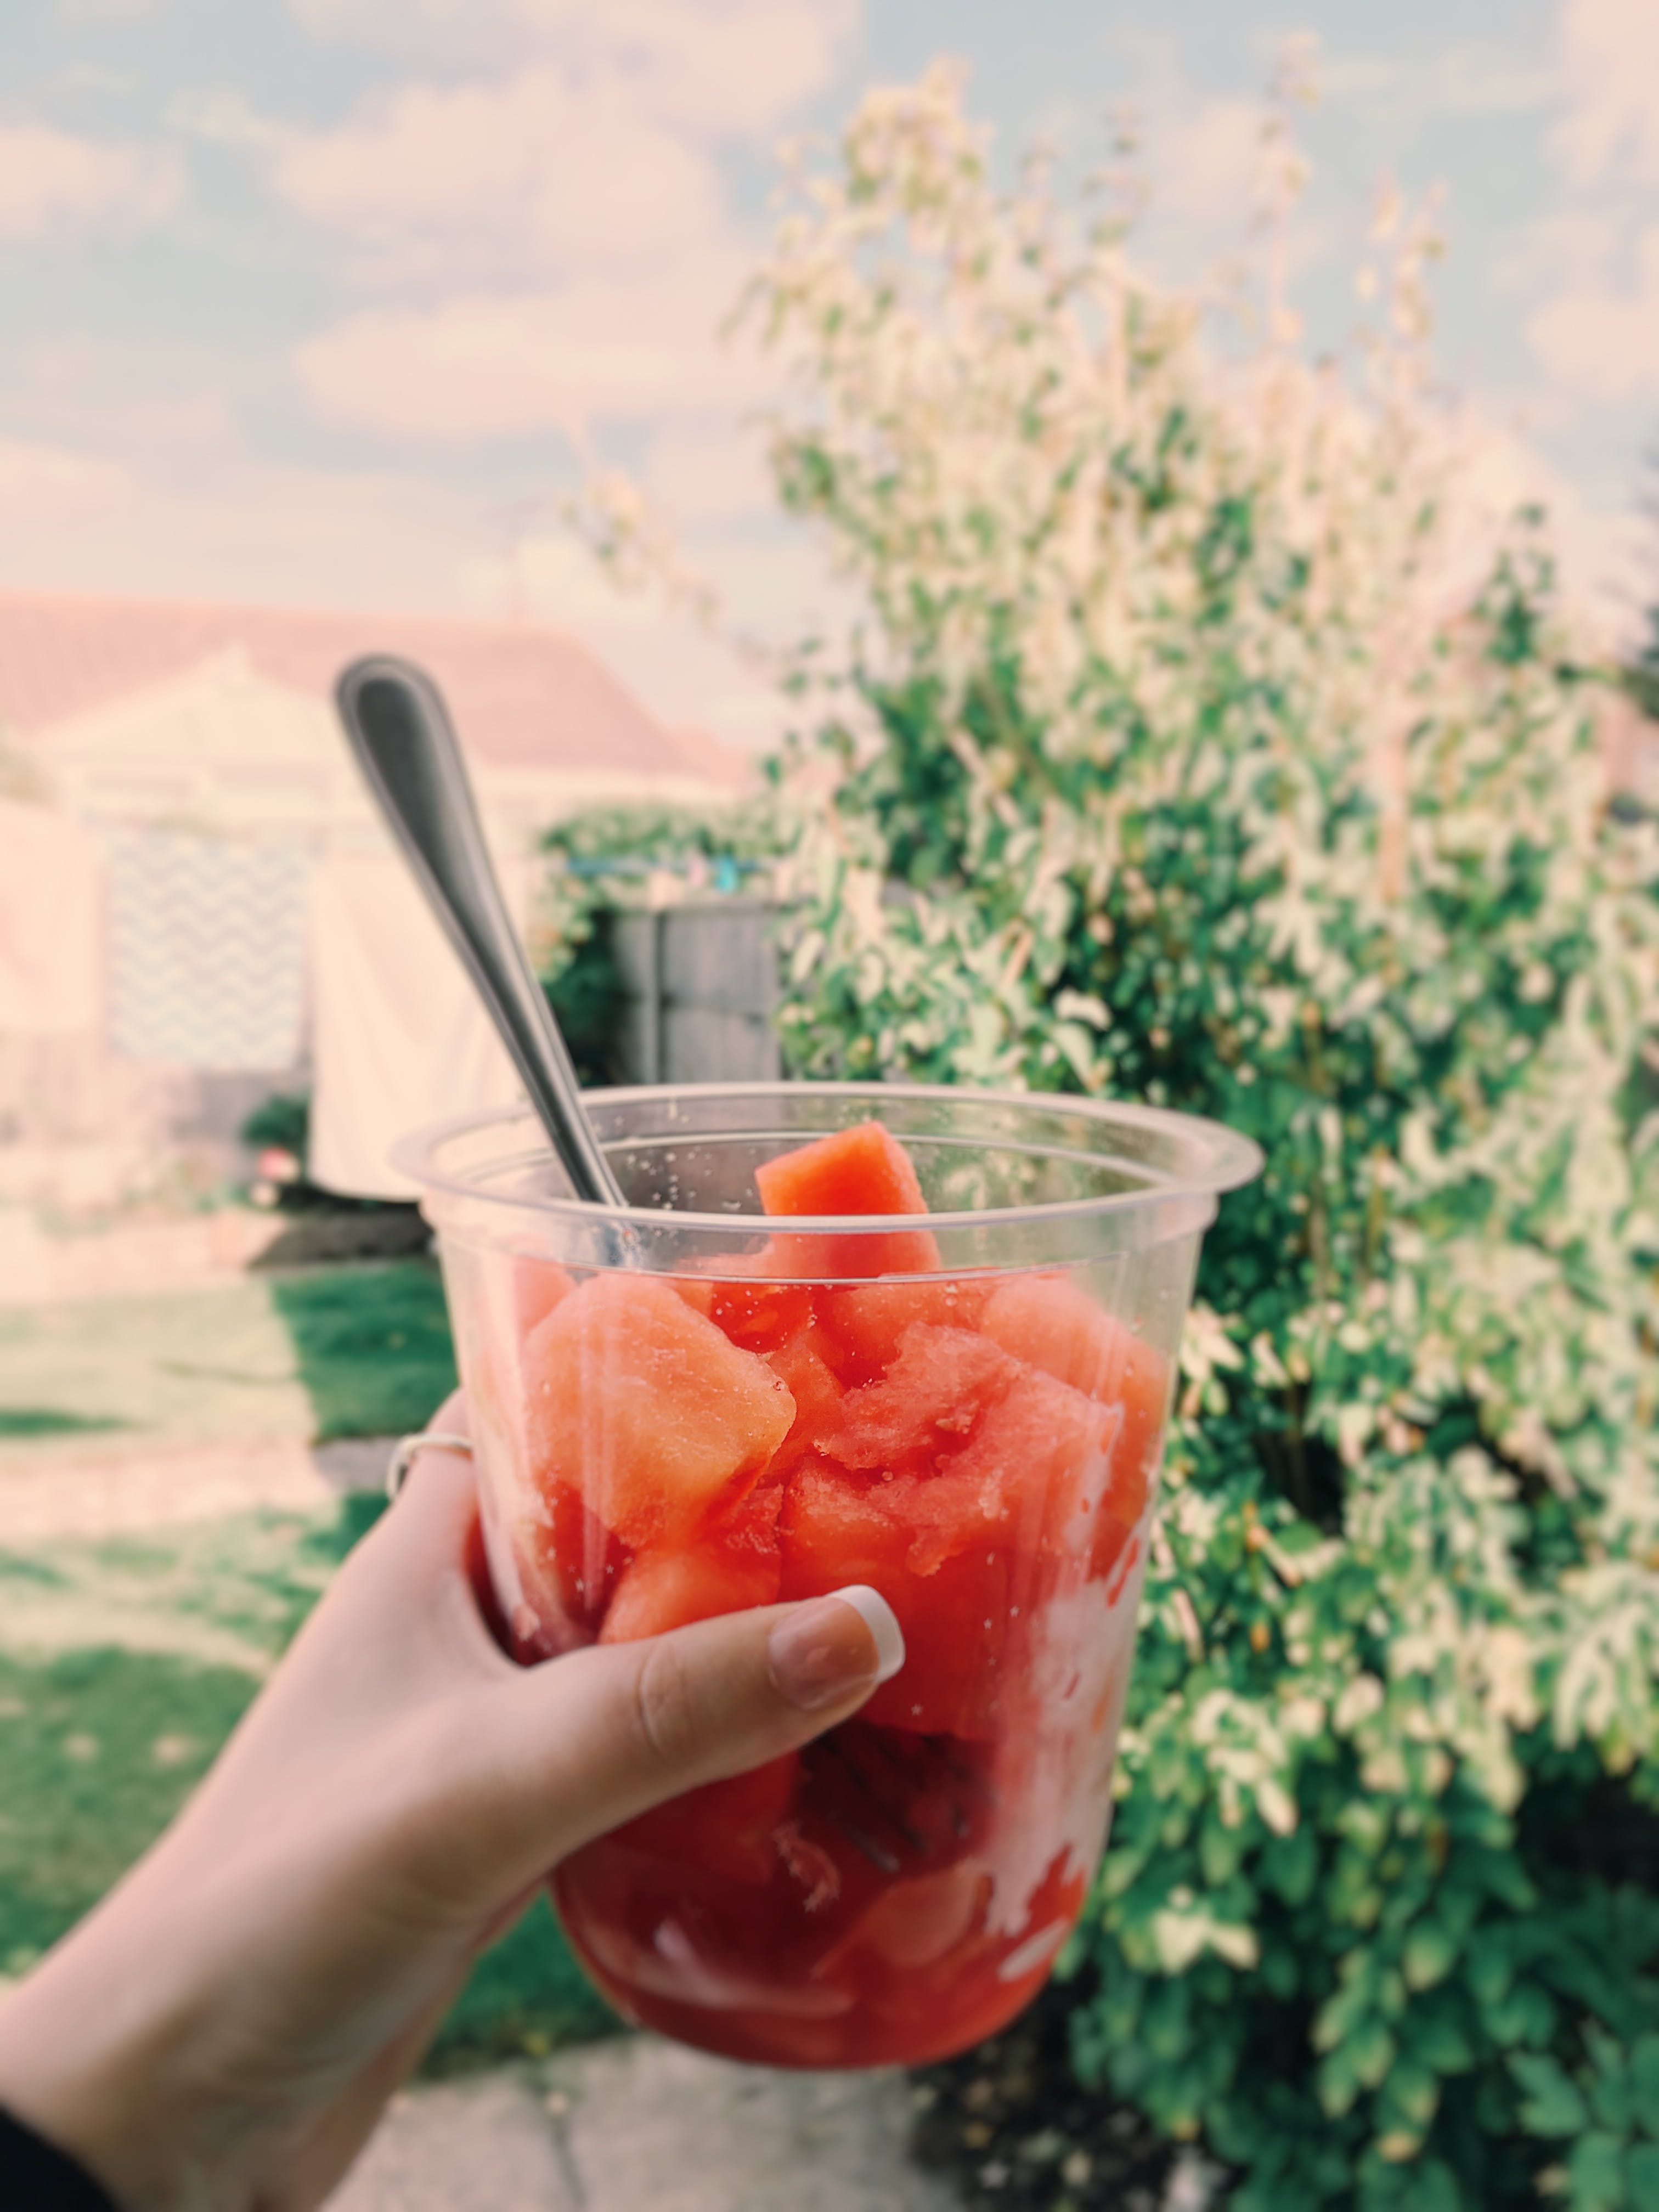 Person Holding Cup With Fresh Fruit